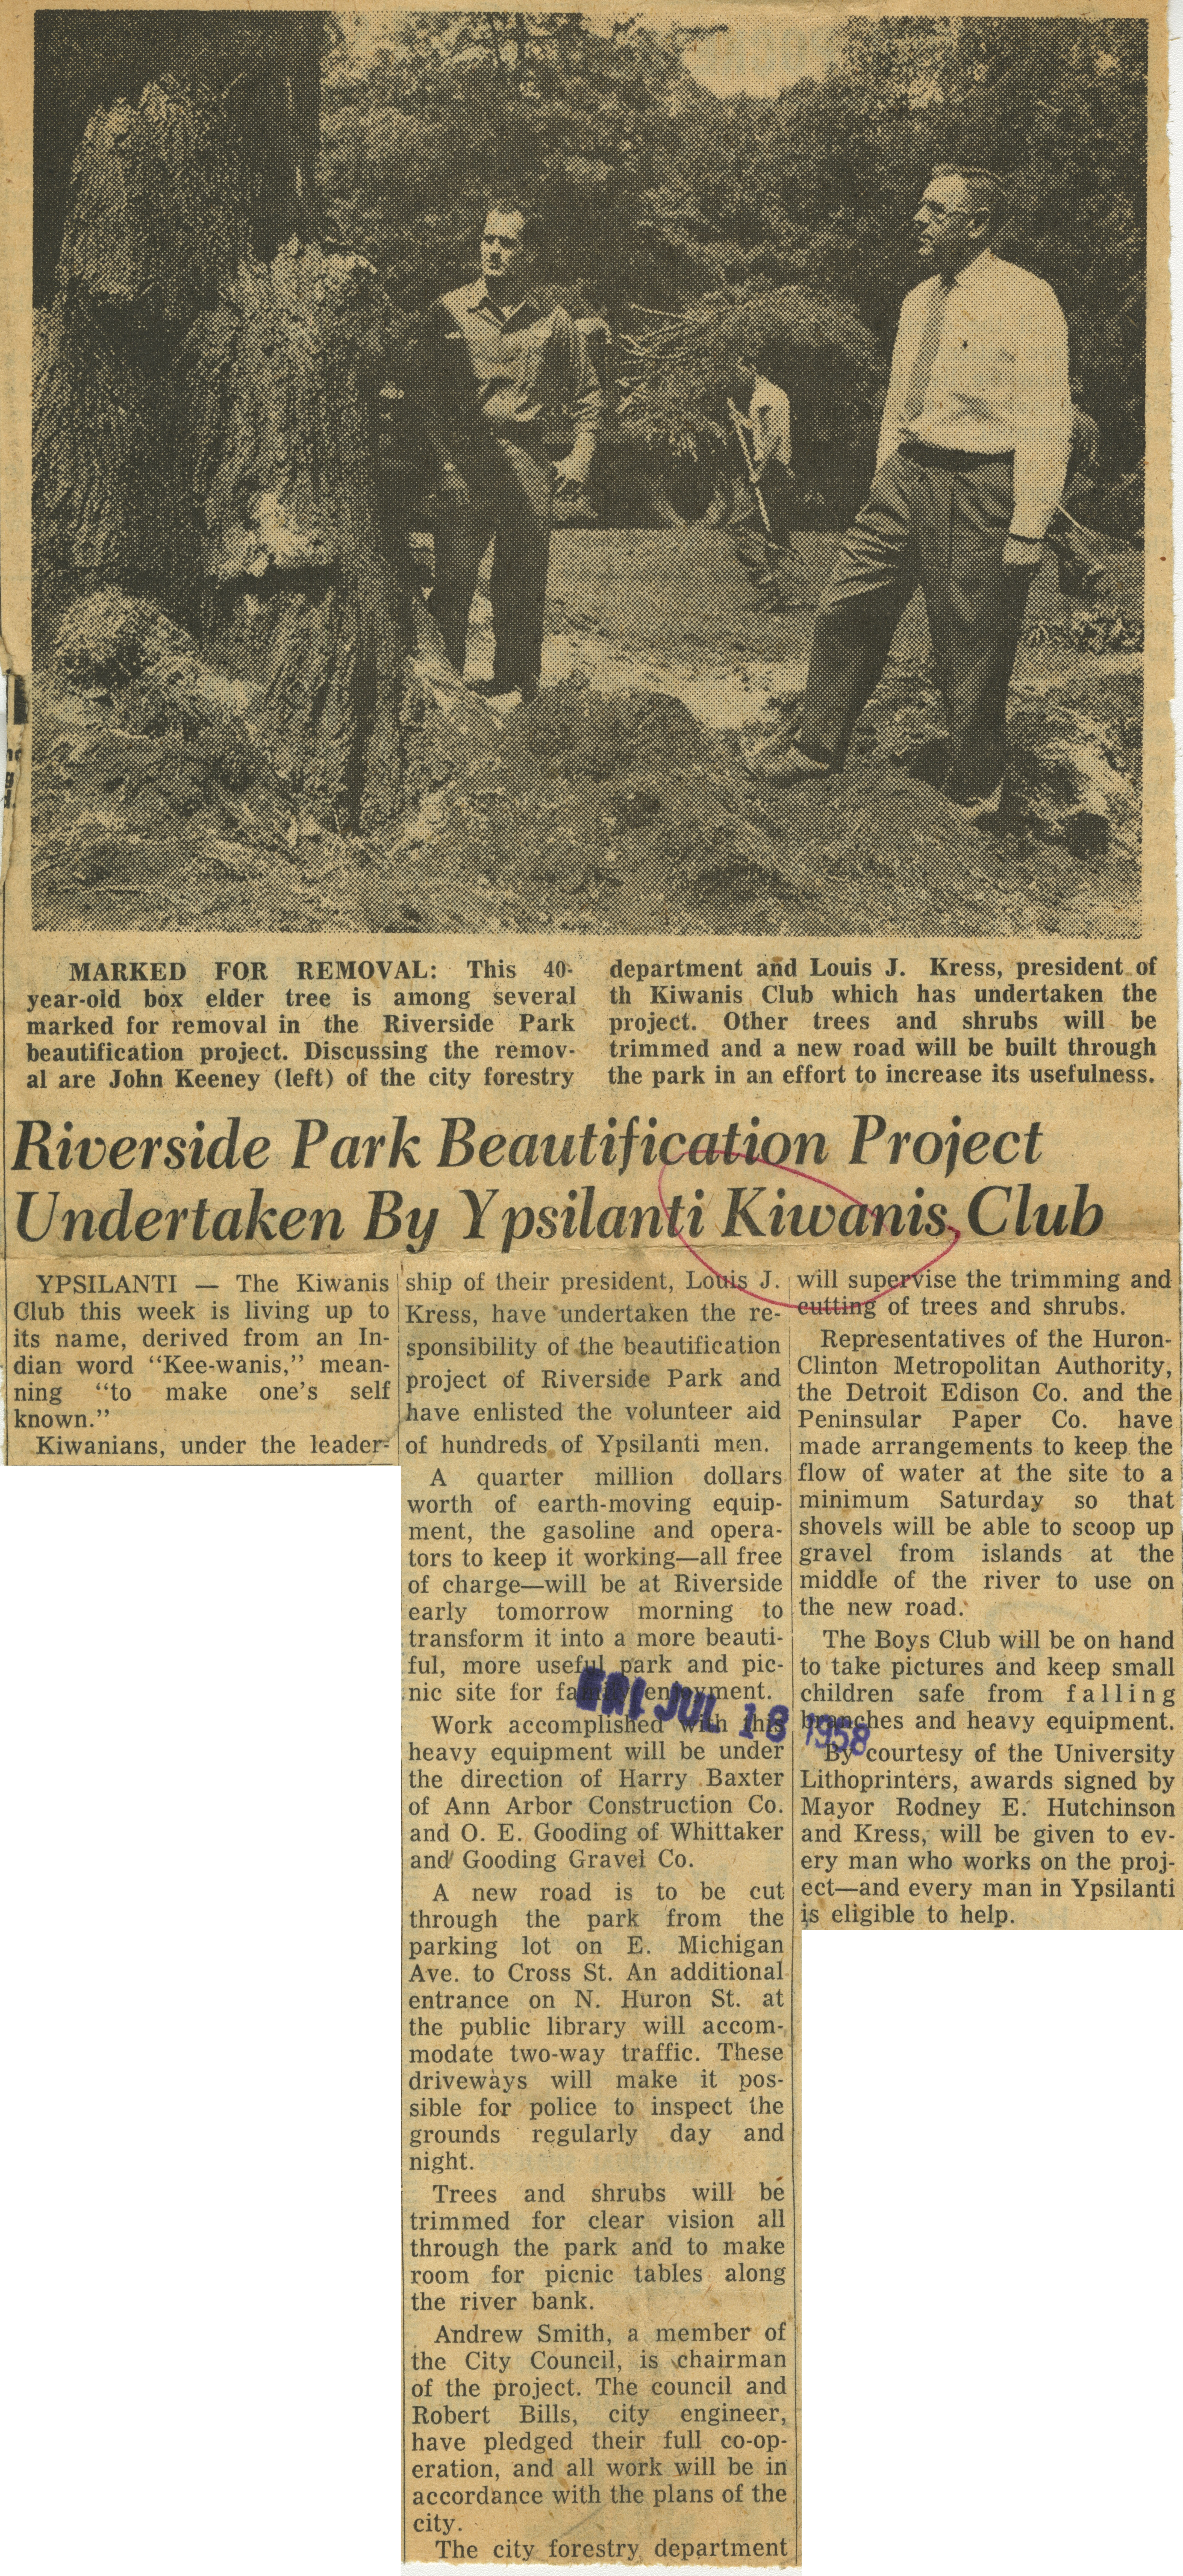 Riverside Park Beautification Project Undertaken By Ypsilanti Kiwanis Club image